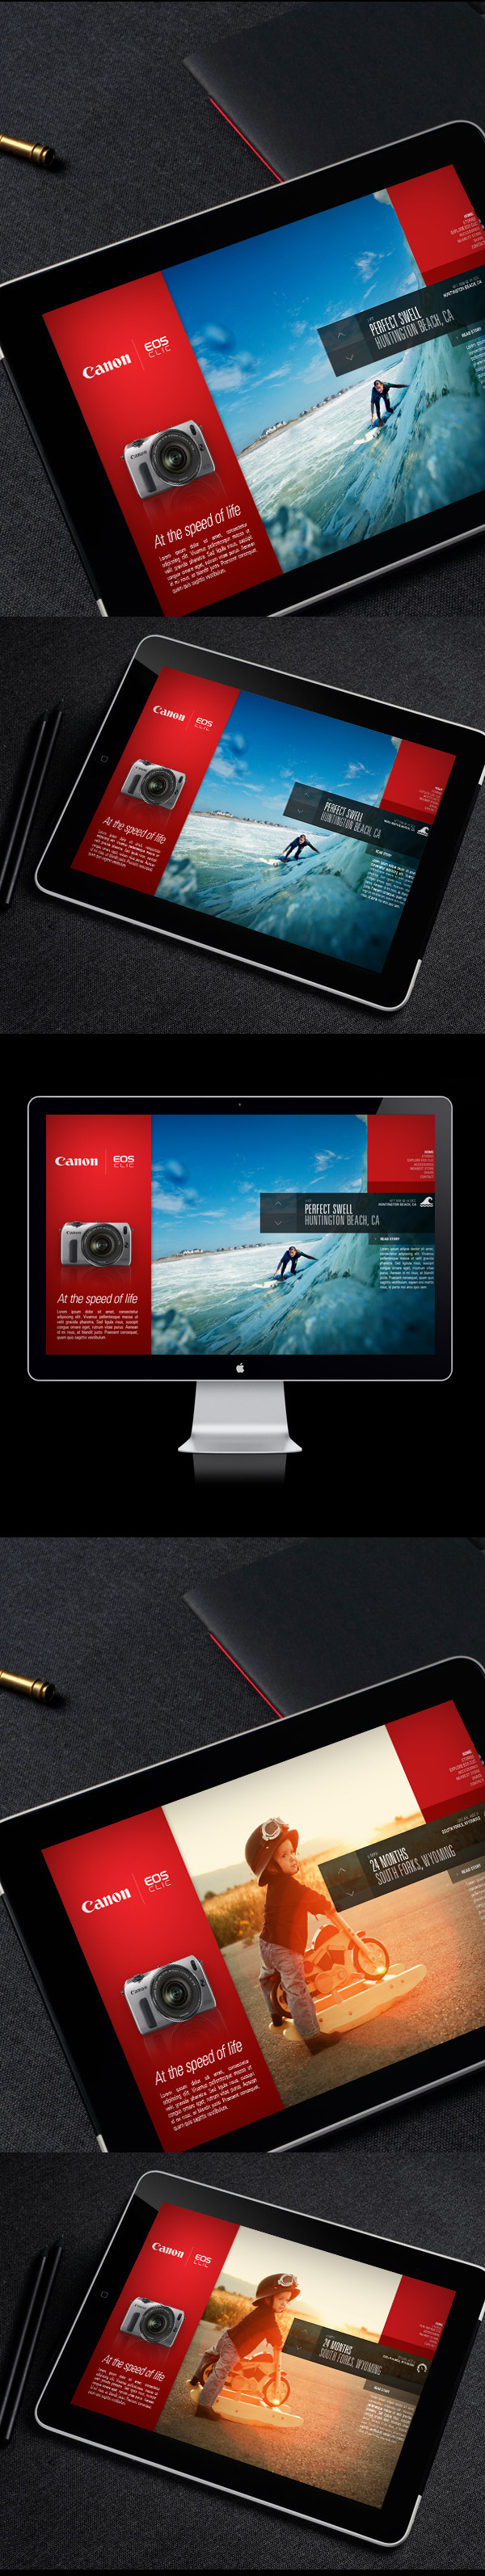 Canon EOS M / Campaign Microsite on the Behance Network #page #landing